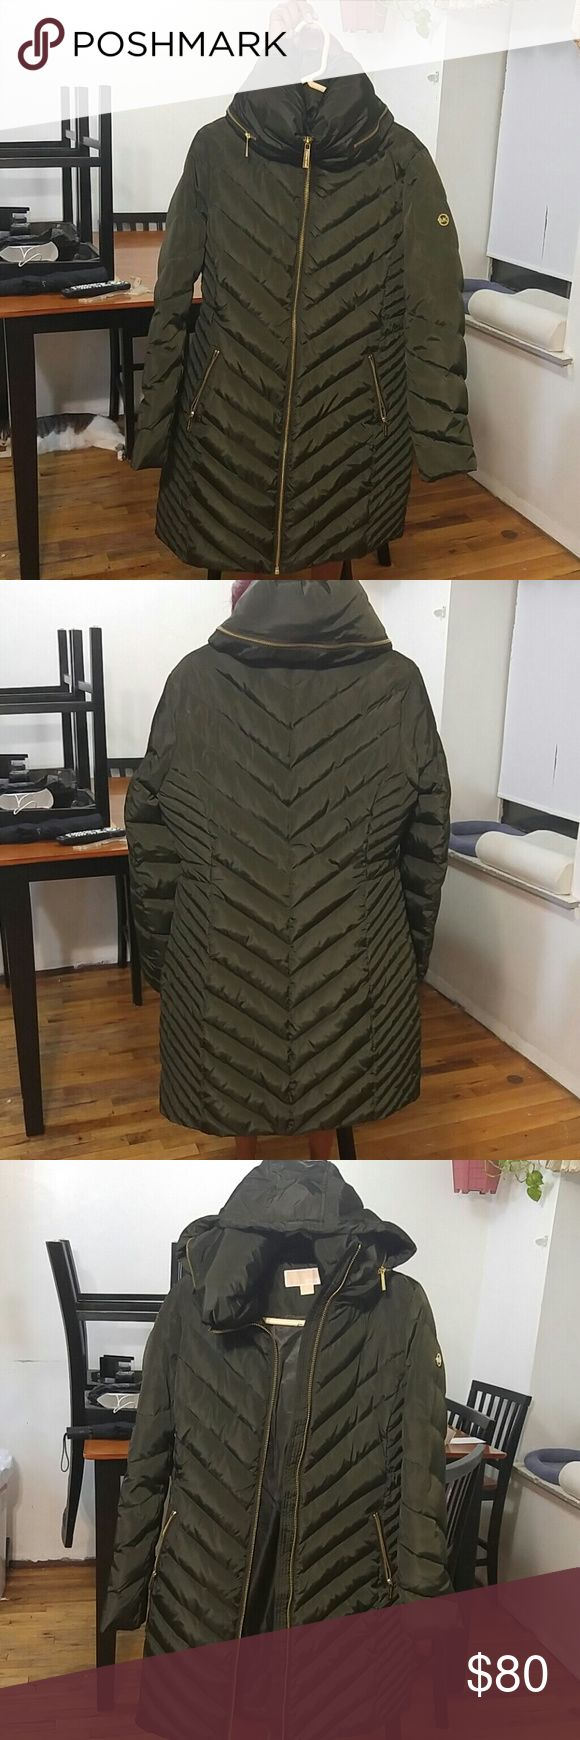 Michael Kors Puffer coat Olive puffer coat stops above the knee , gold zippers, hood with in the neck. Must sell by and of October Michael Kors Jackets & Coats Puffers